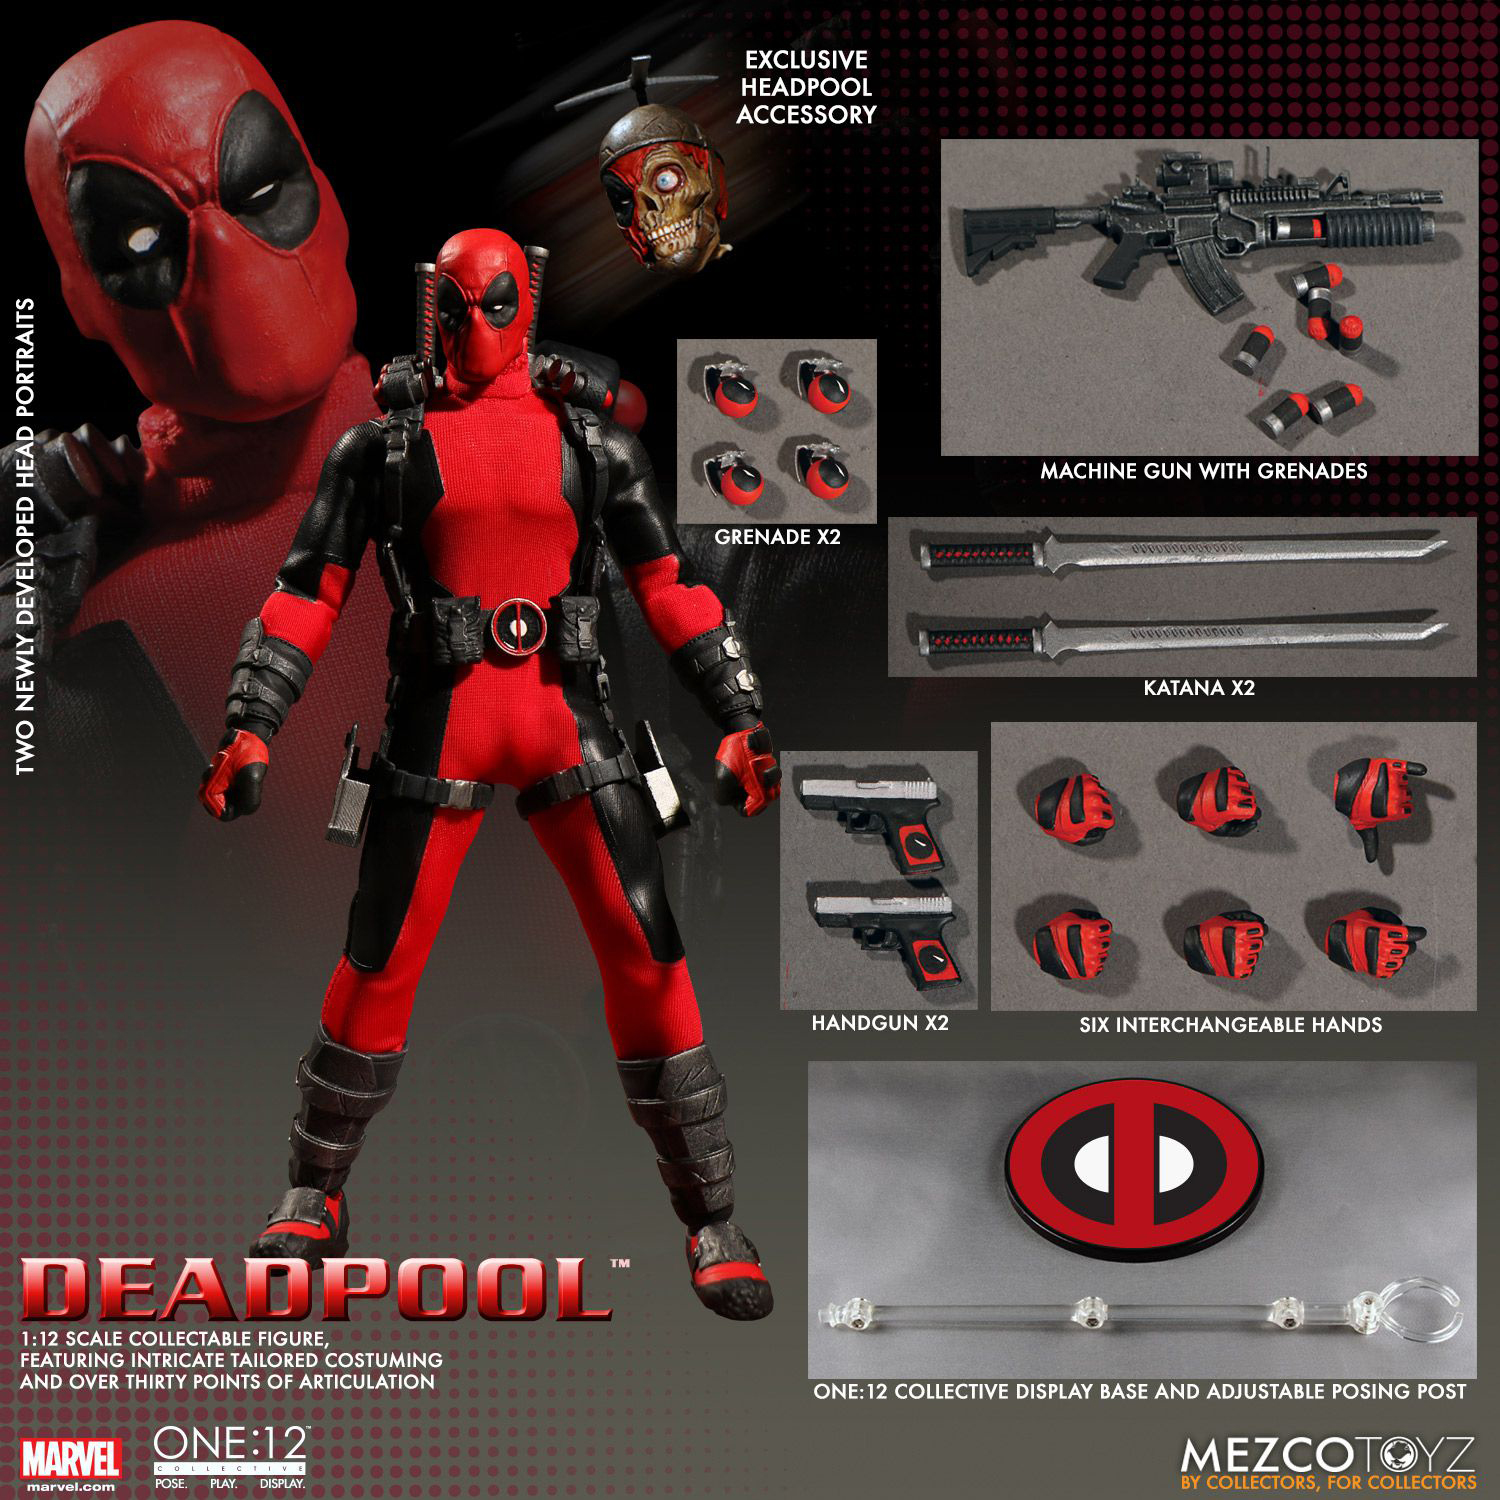 deadpool-mezco-one-12-collective-action-figure-8